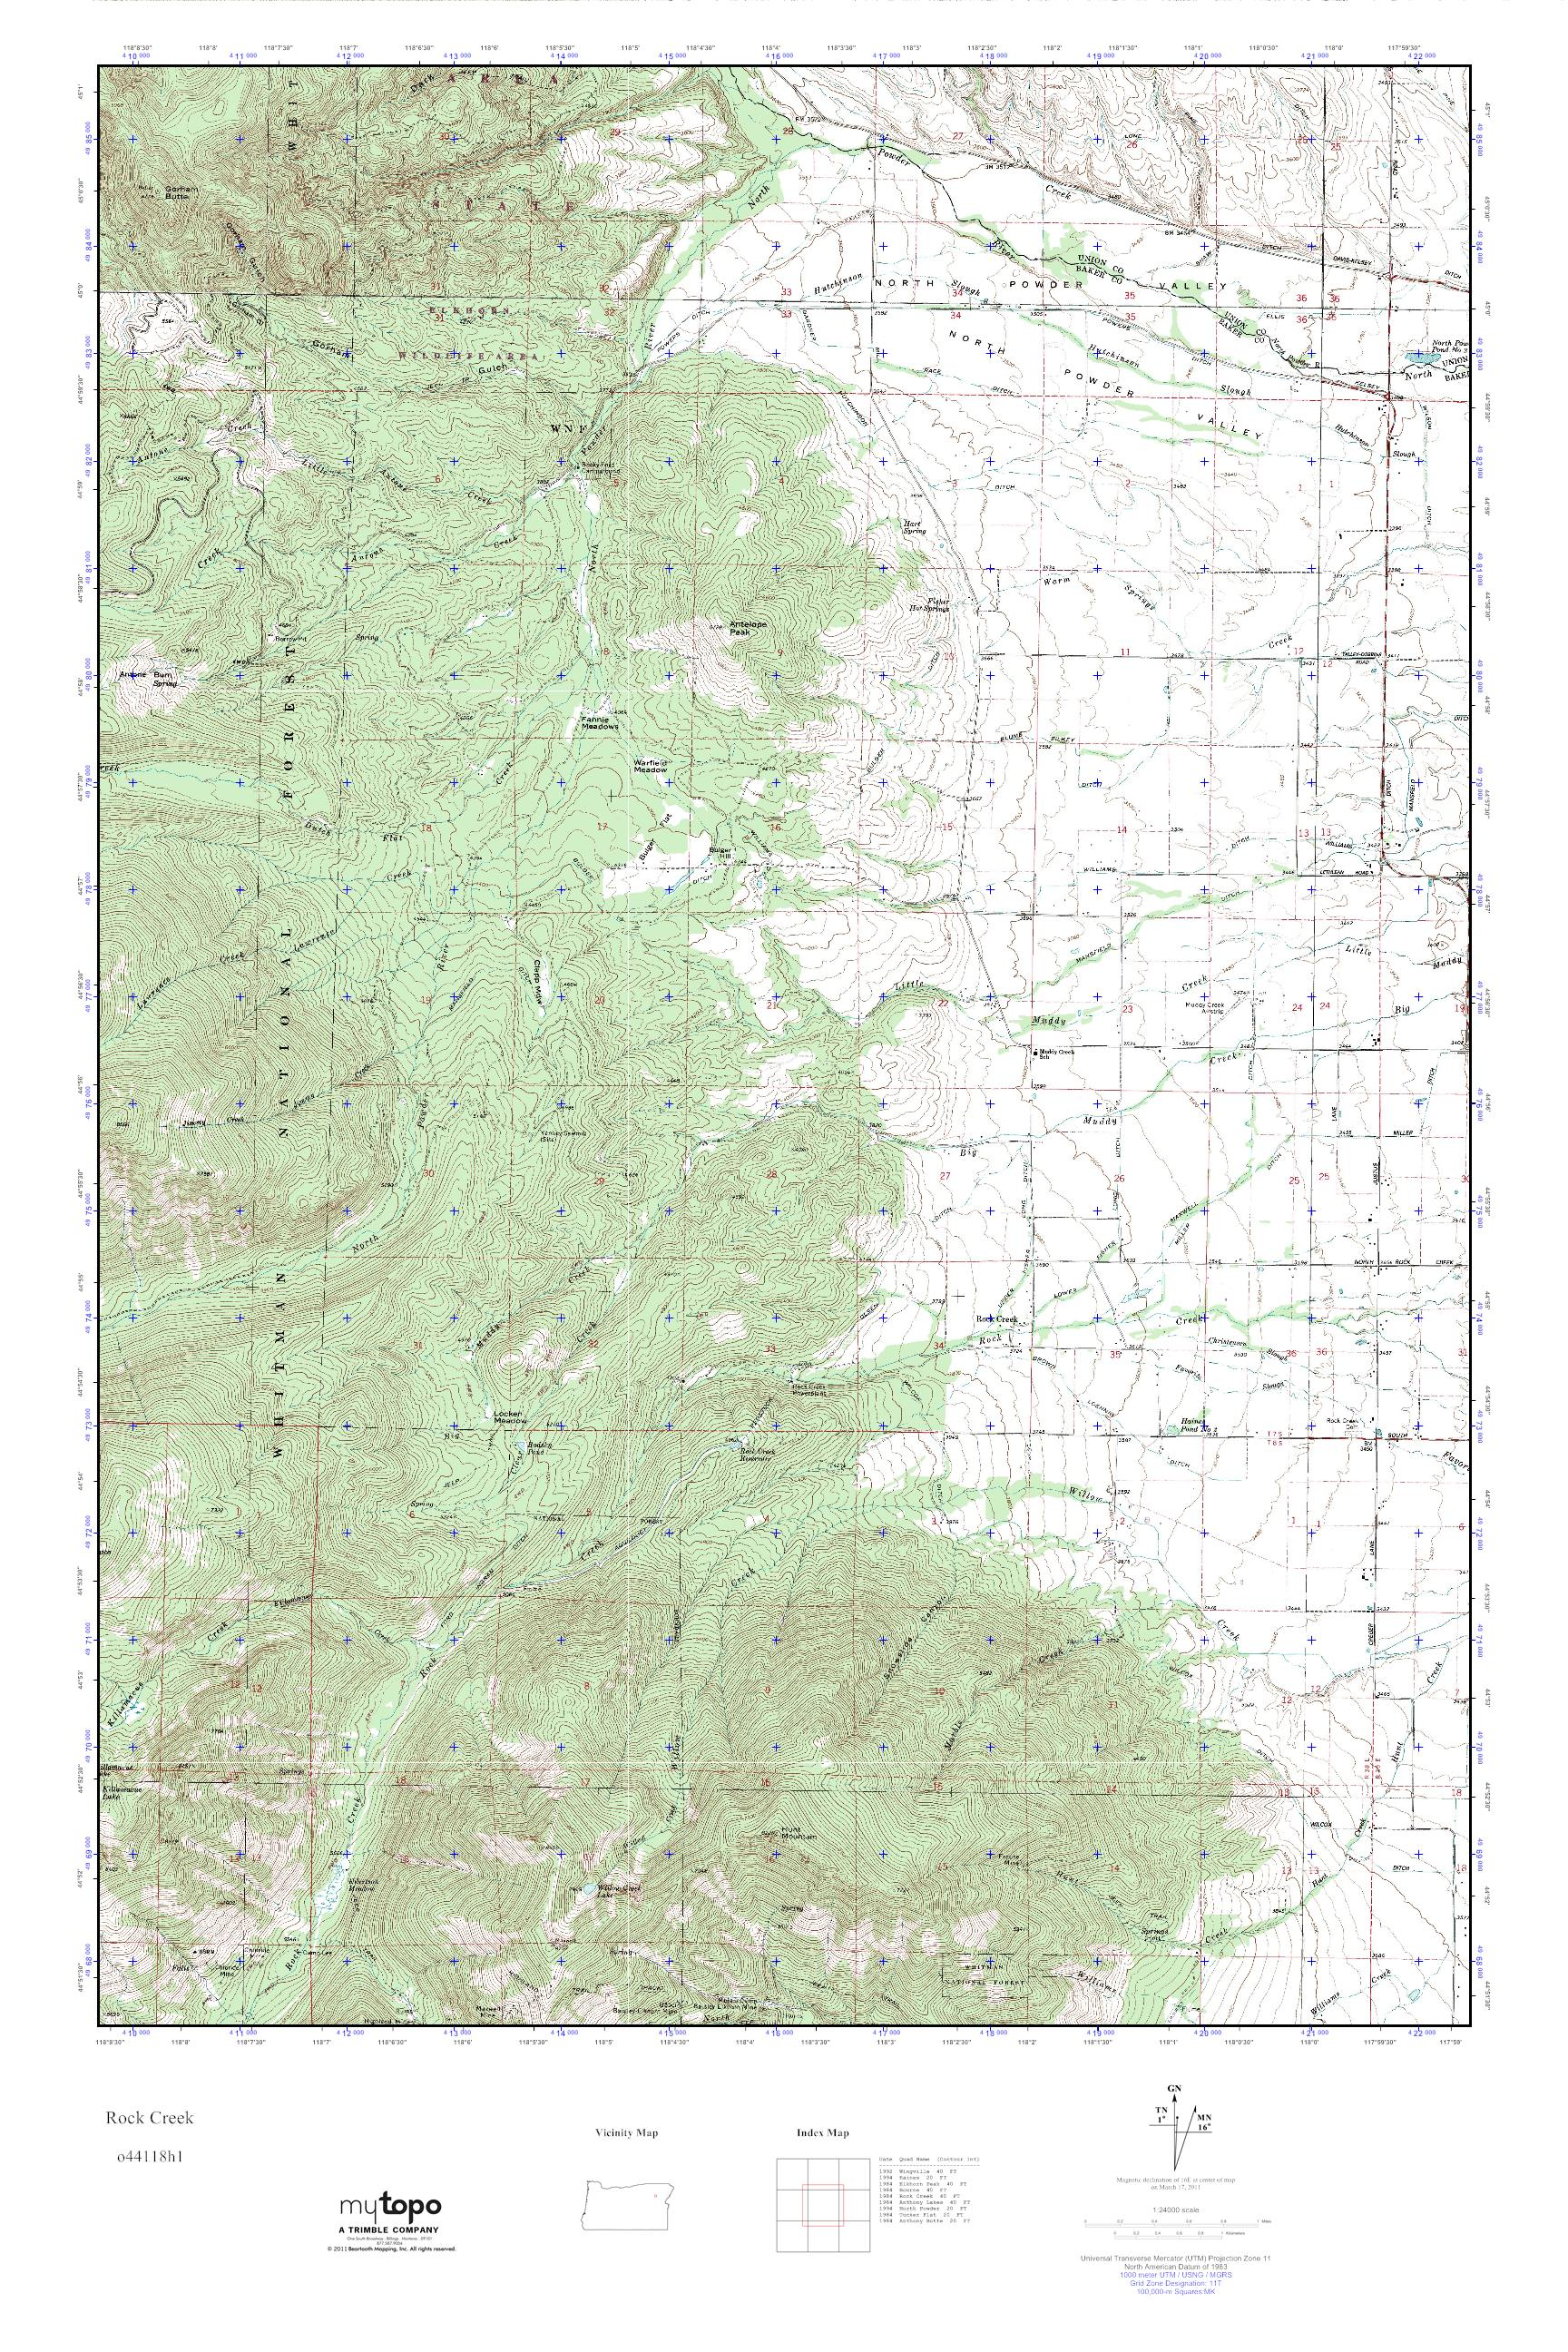 Mytopo Rock Creek Oregon Usgs Quad Topo Map